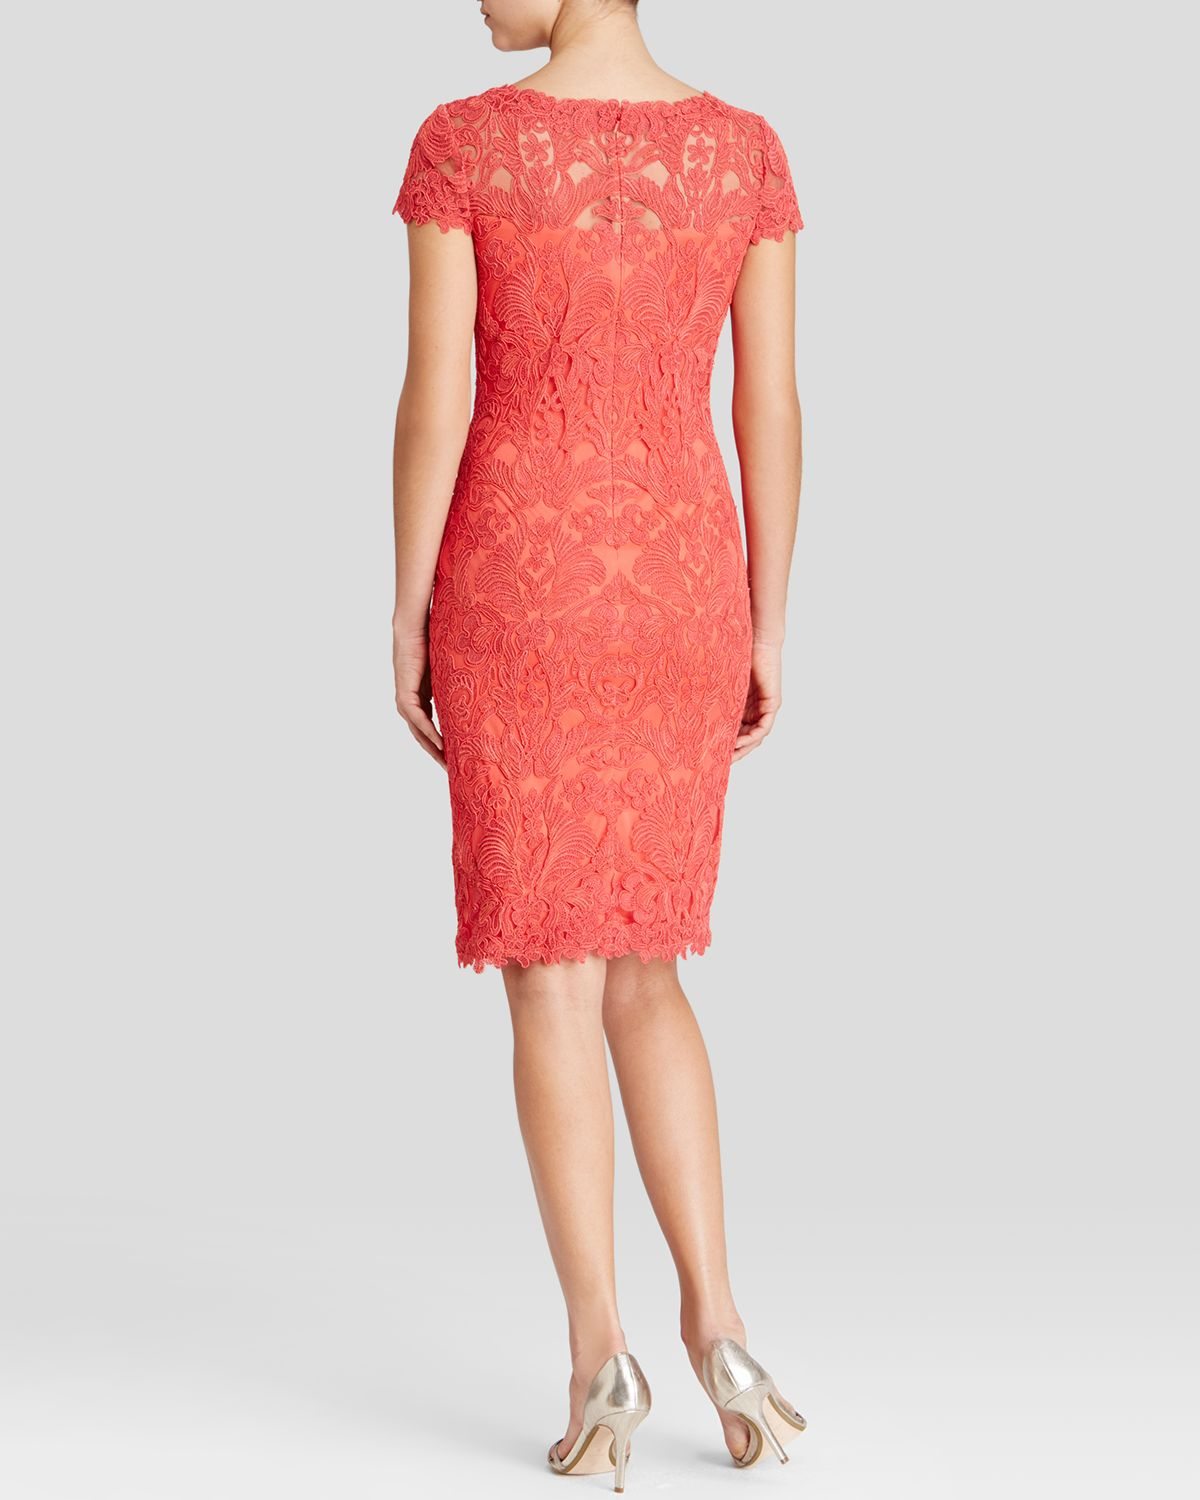 Tadashi shoji dress cap sleeve corded lace sheath in red for Bloomingdales dresses for wedding guests